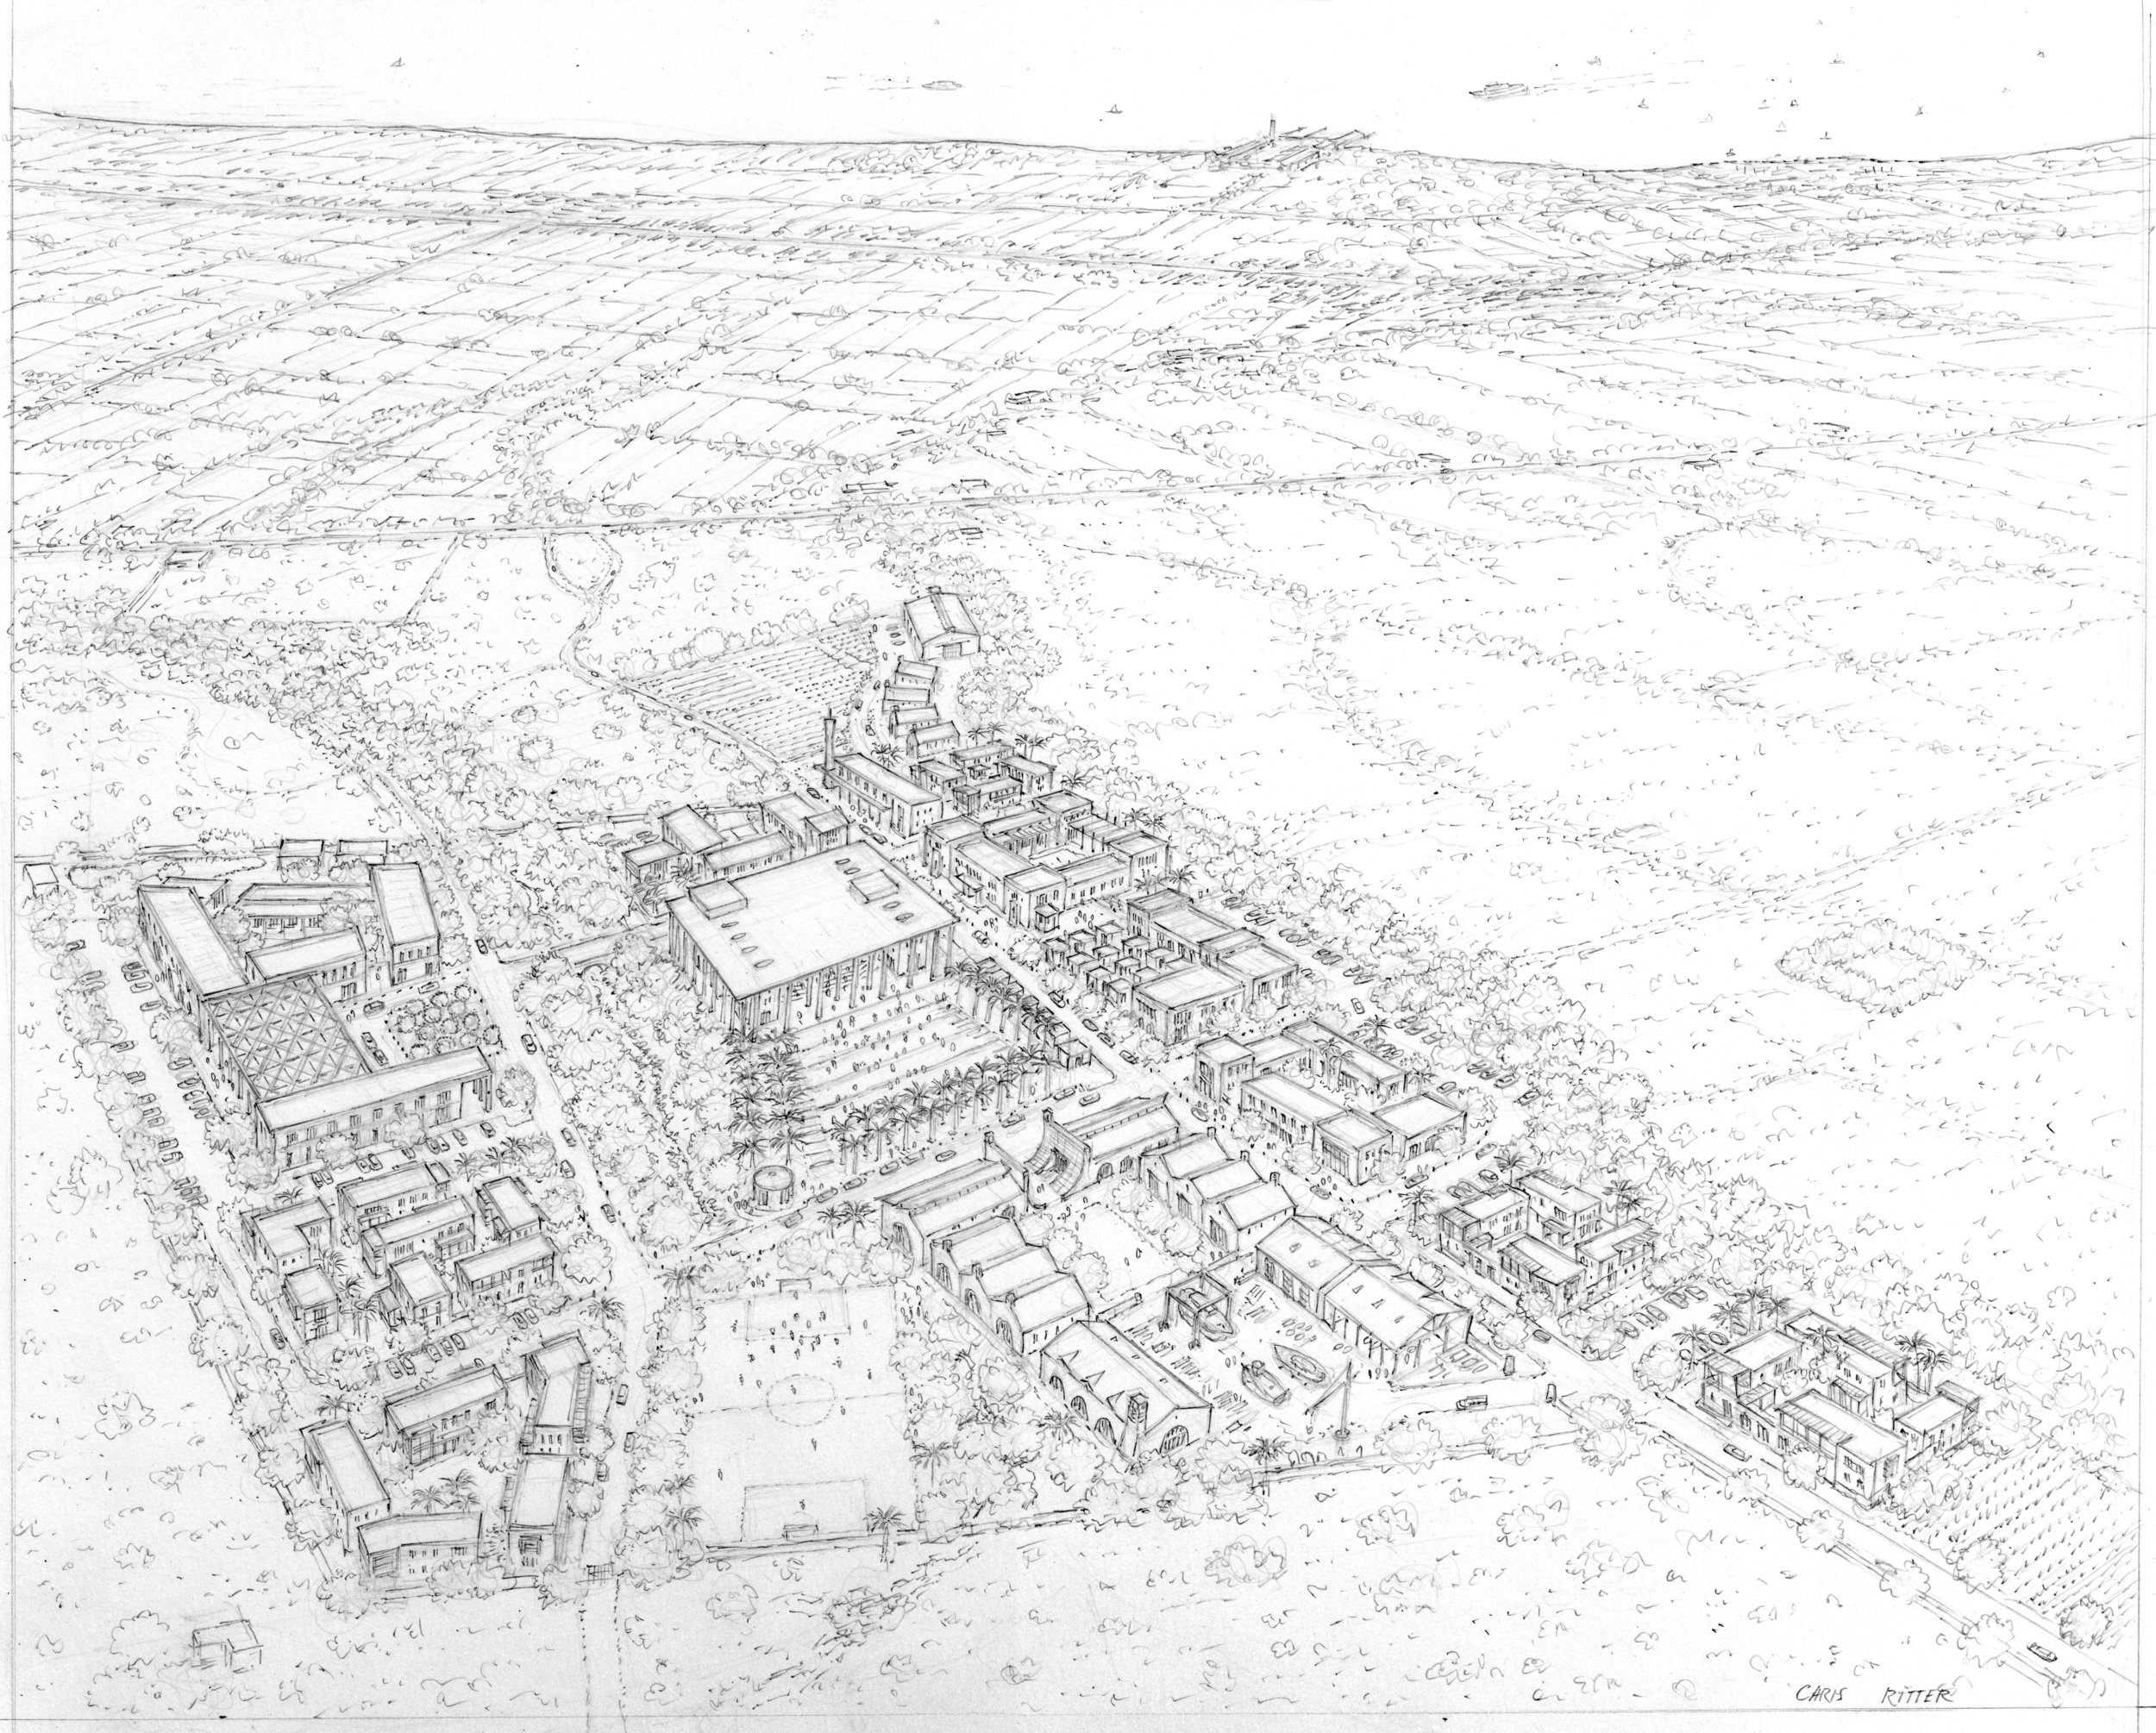 Aerial View of SVLC (drawing by Chris Ritter)